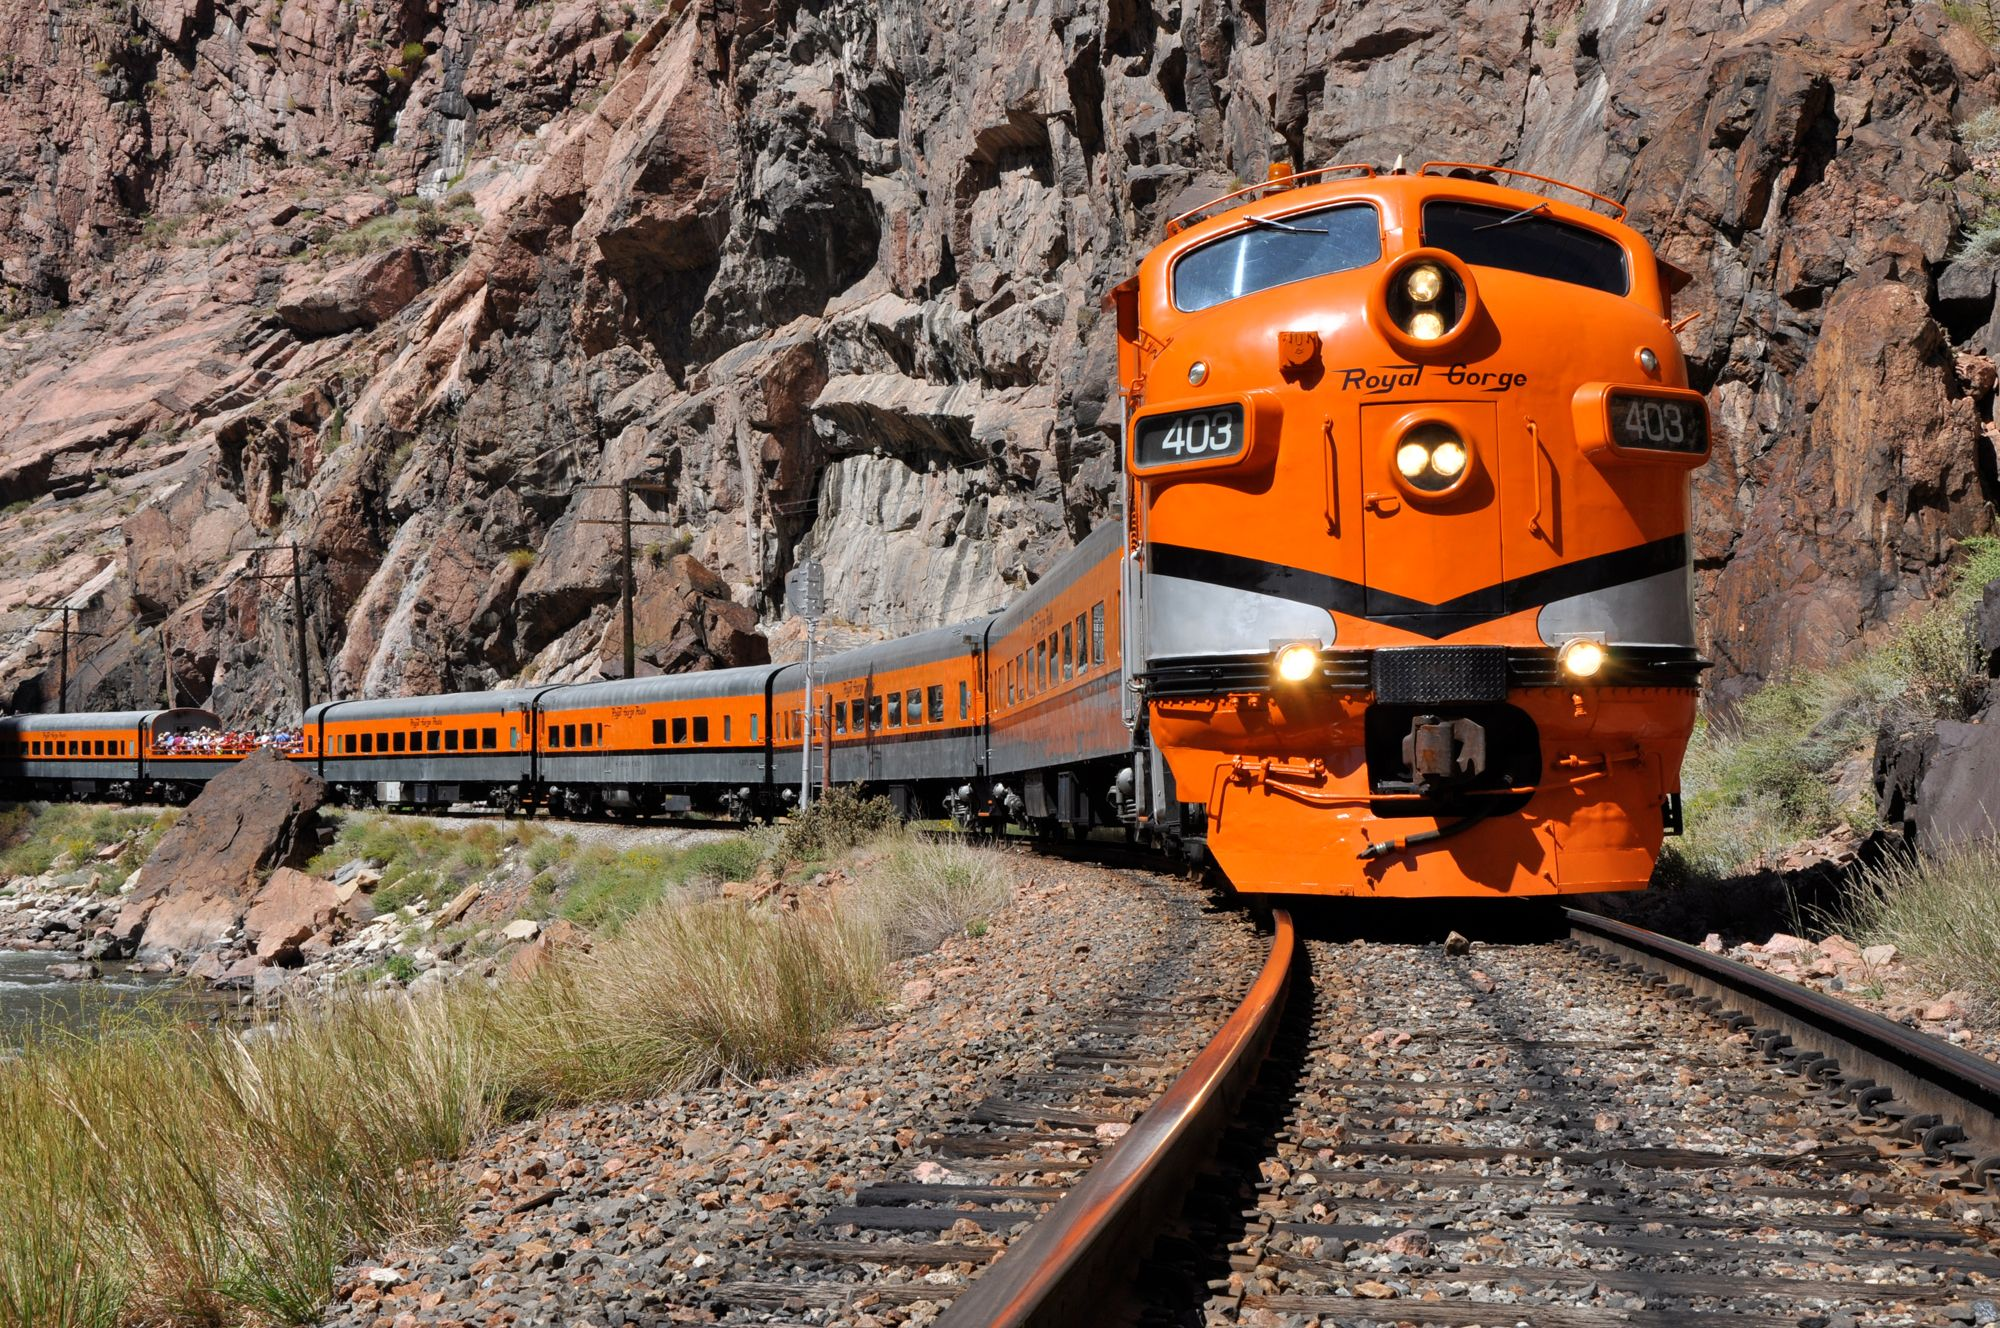 Ark Holzgeländer Cheat Royal Gorge Route Railroad Take A Scenic Railway Tour Along The